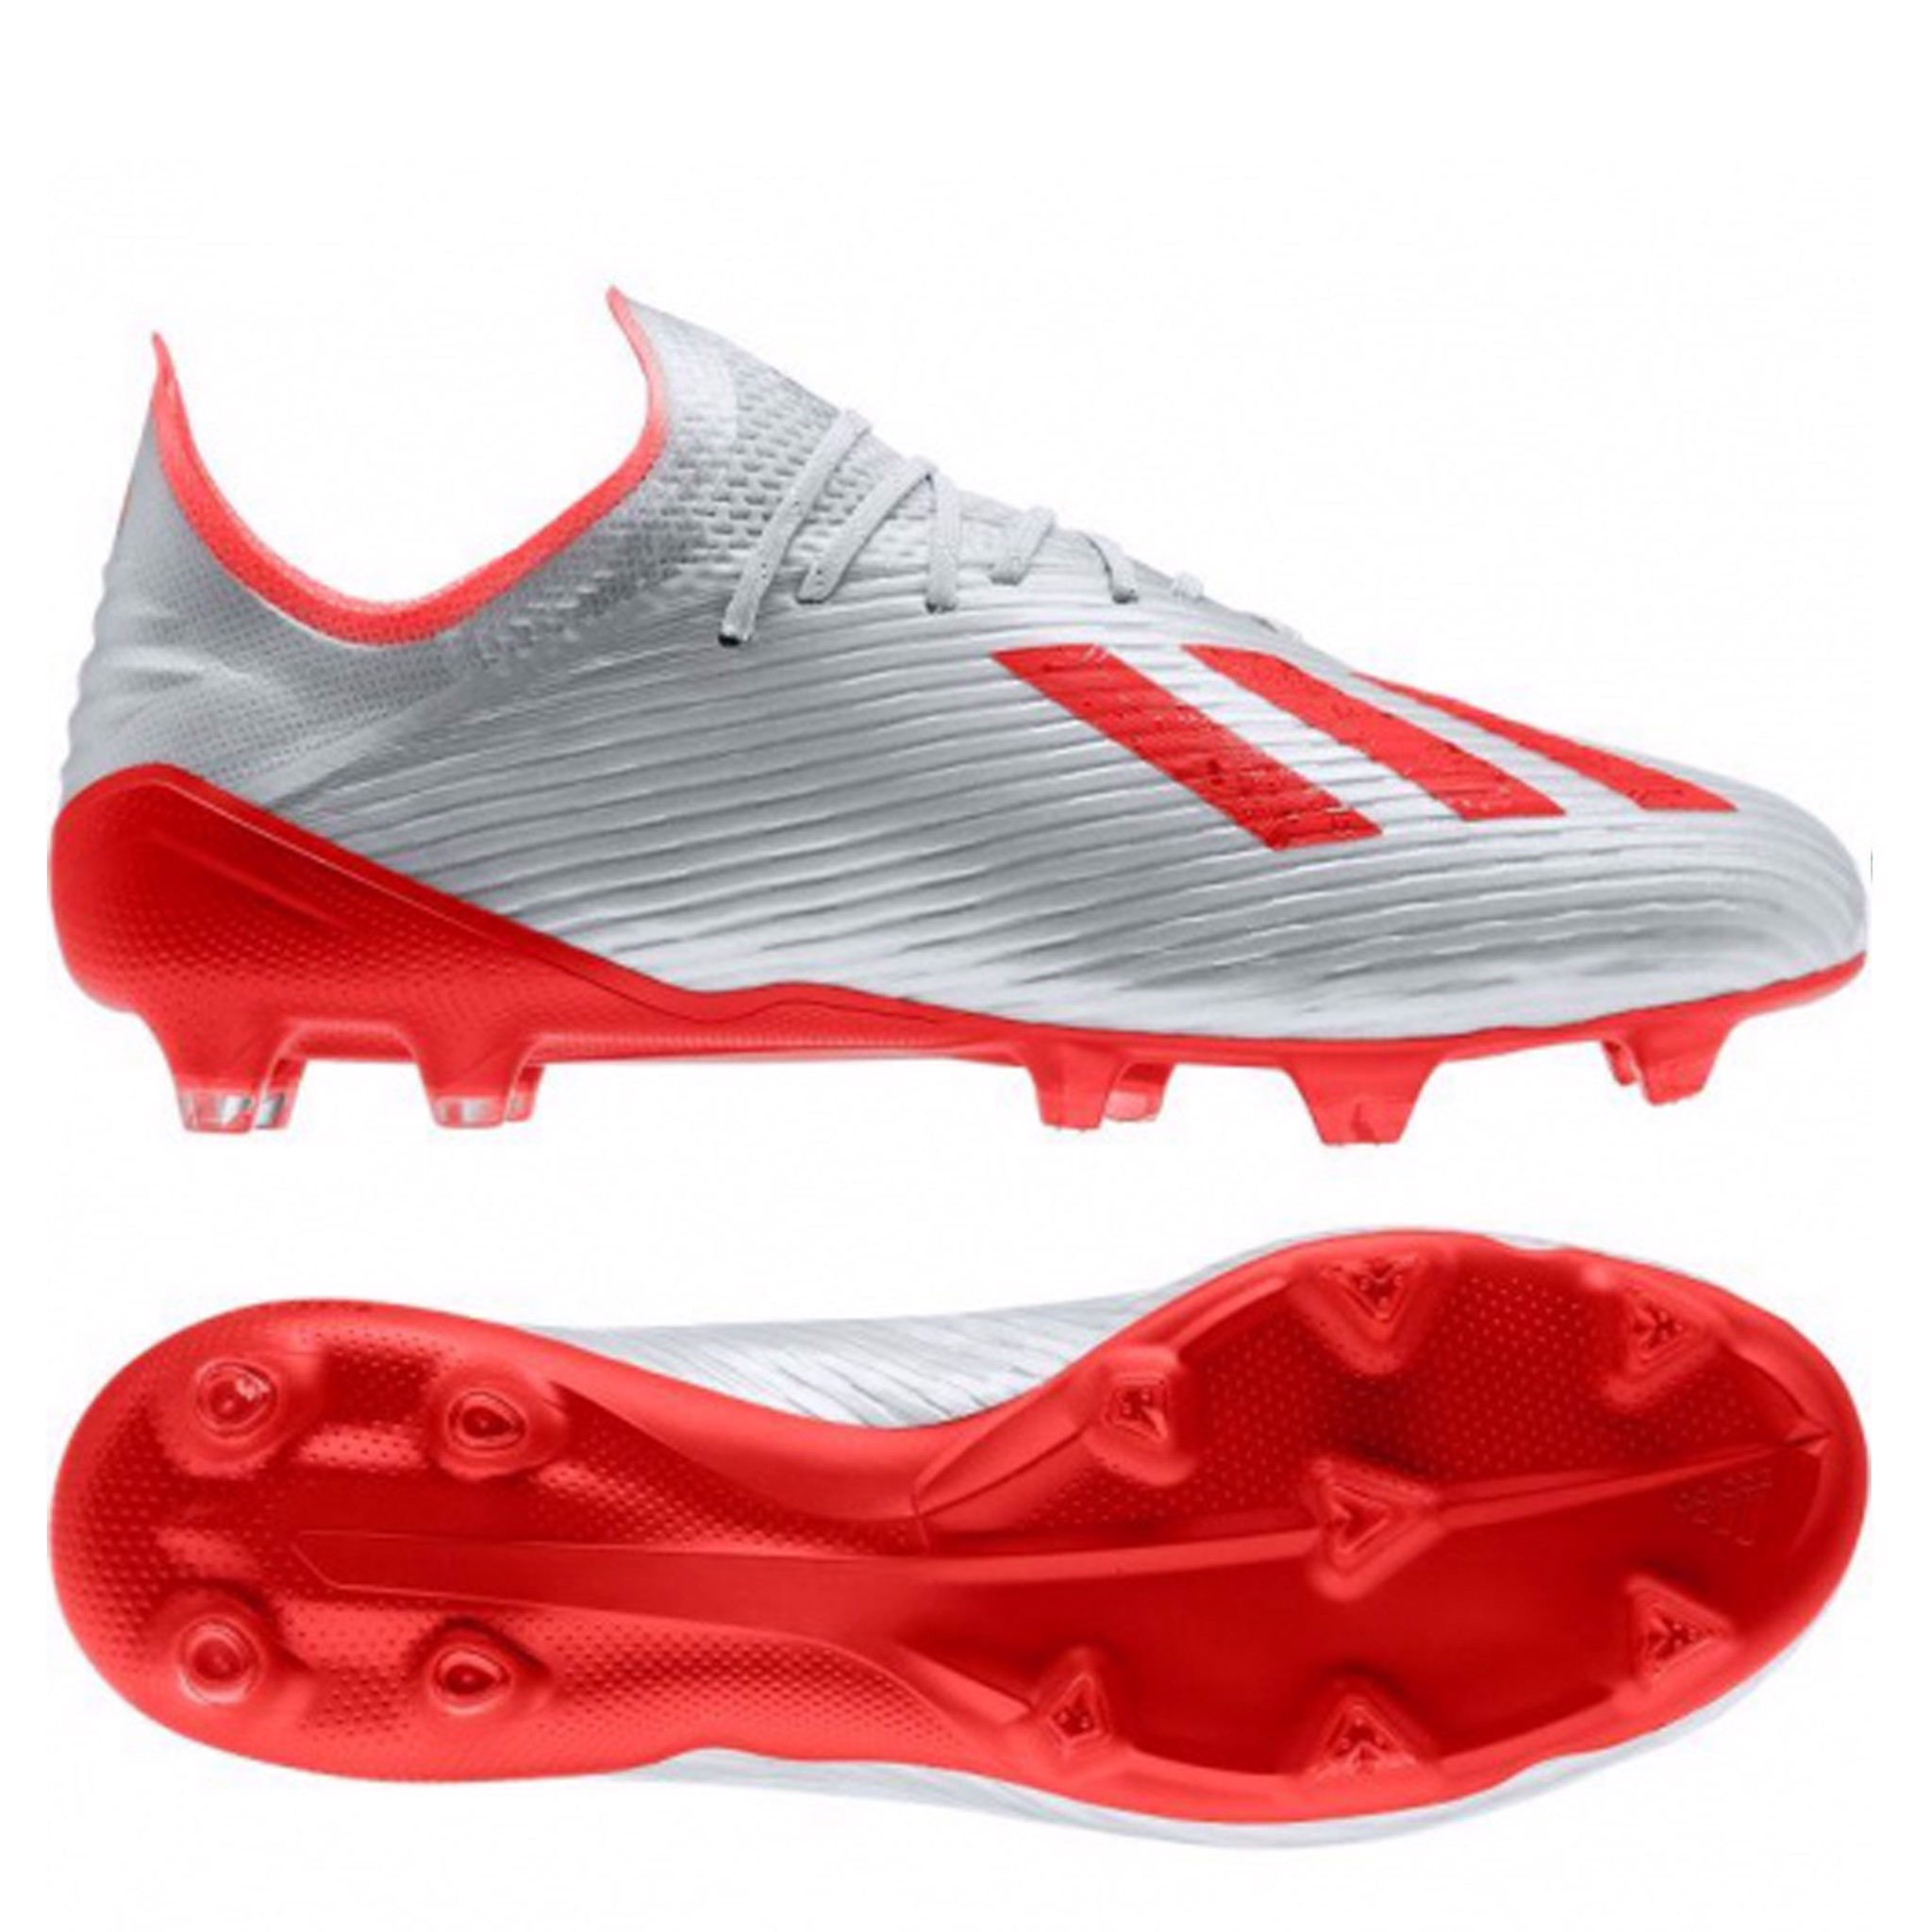 ADIDAS X 19.1 FG 302 REDIRECT - SILVER METALLIC/HIGH RISK RED/FOOTWEAR WHITE